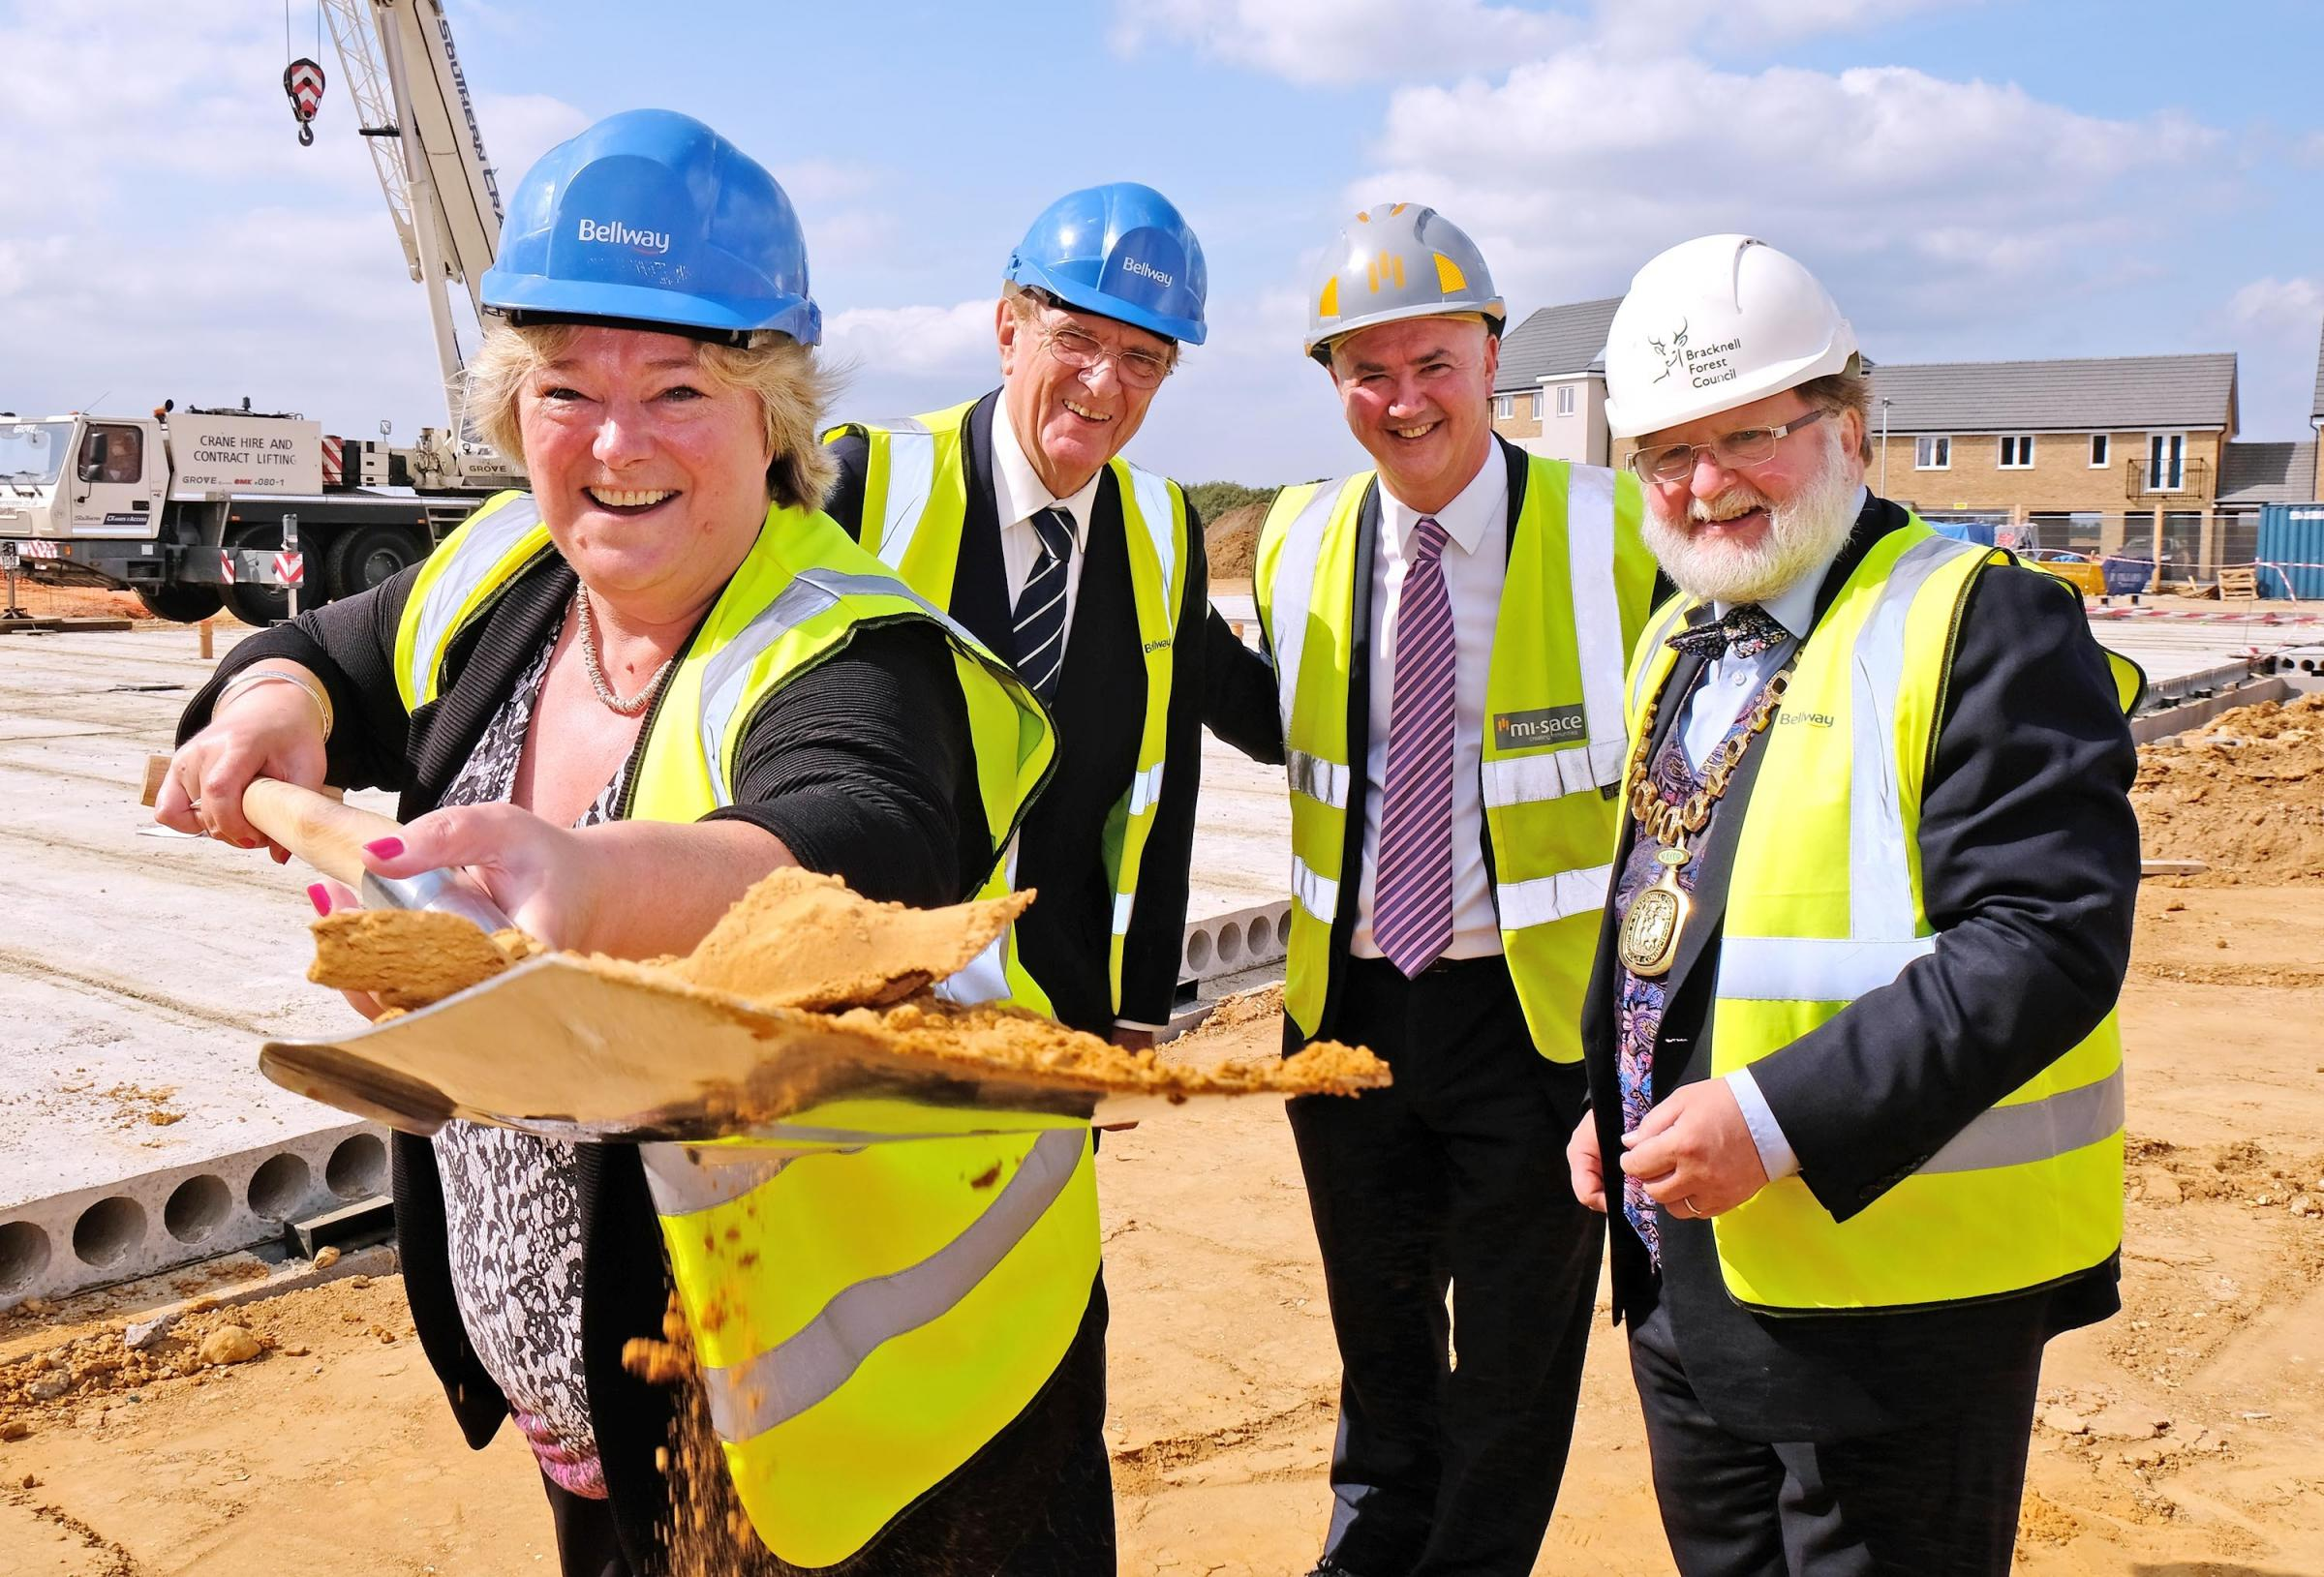 180917 GRound Breaking at new Amen Corner School - Head Teacher Sarah Howells, Sir Roger Fry and Mayor Cllr. Alvin Finch and My Space's Ian Farrell  - Pictures: Mike Swift.